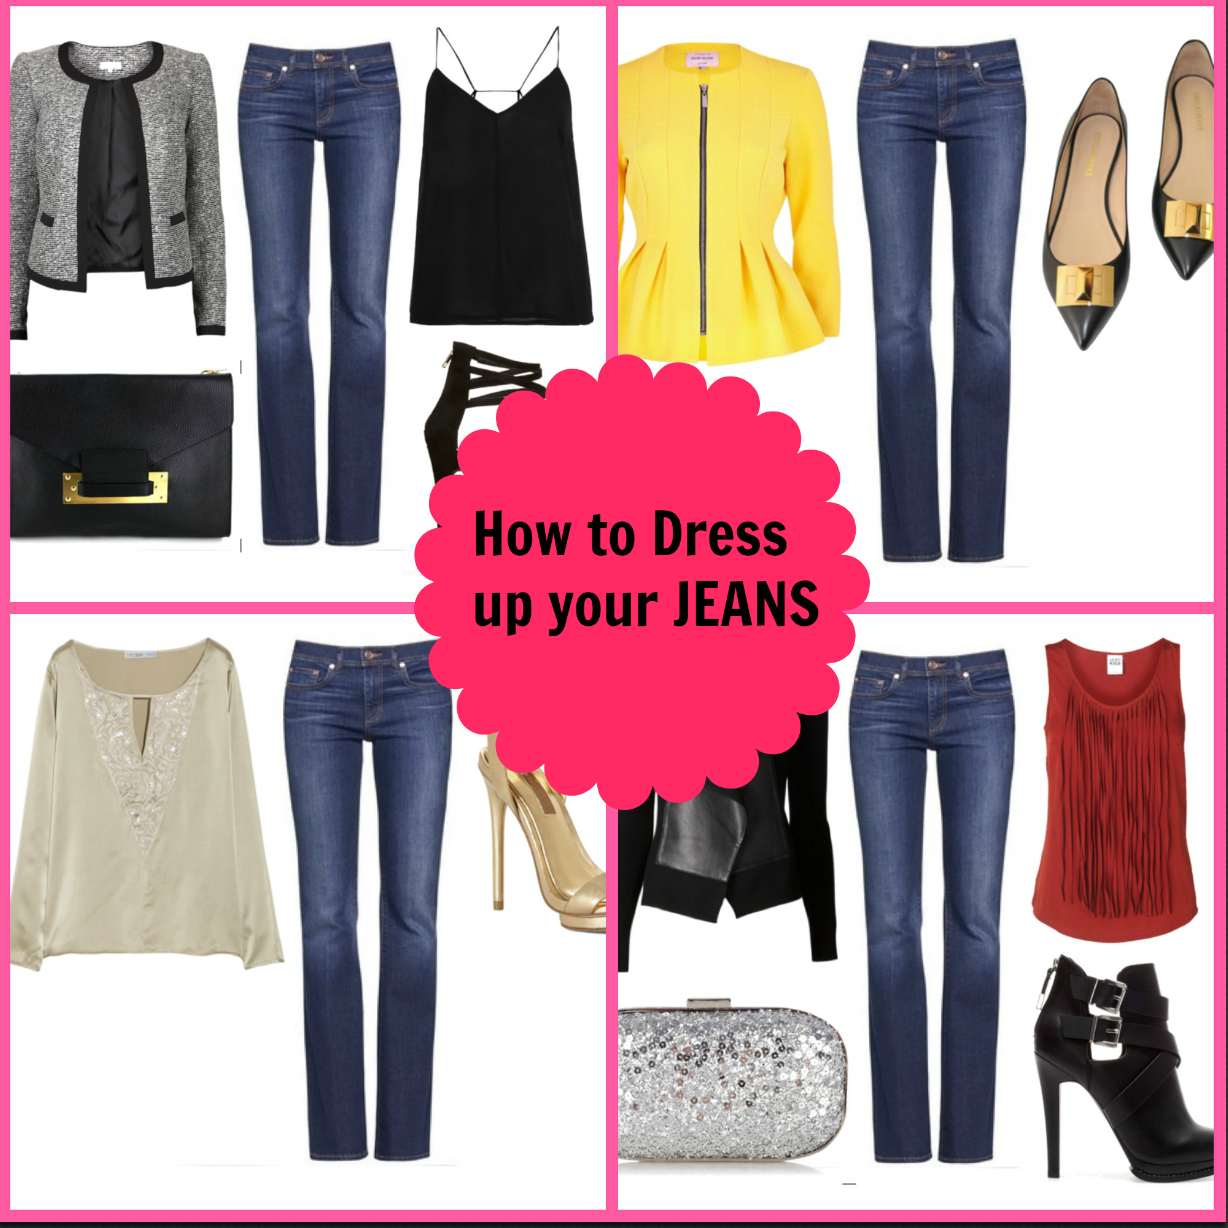 how to dress up jeans for work